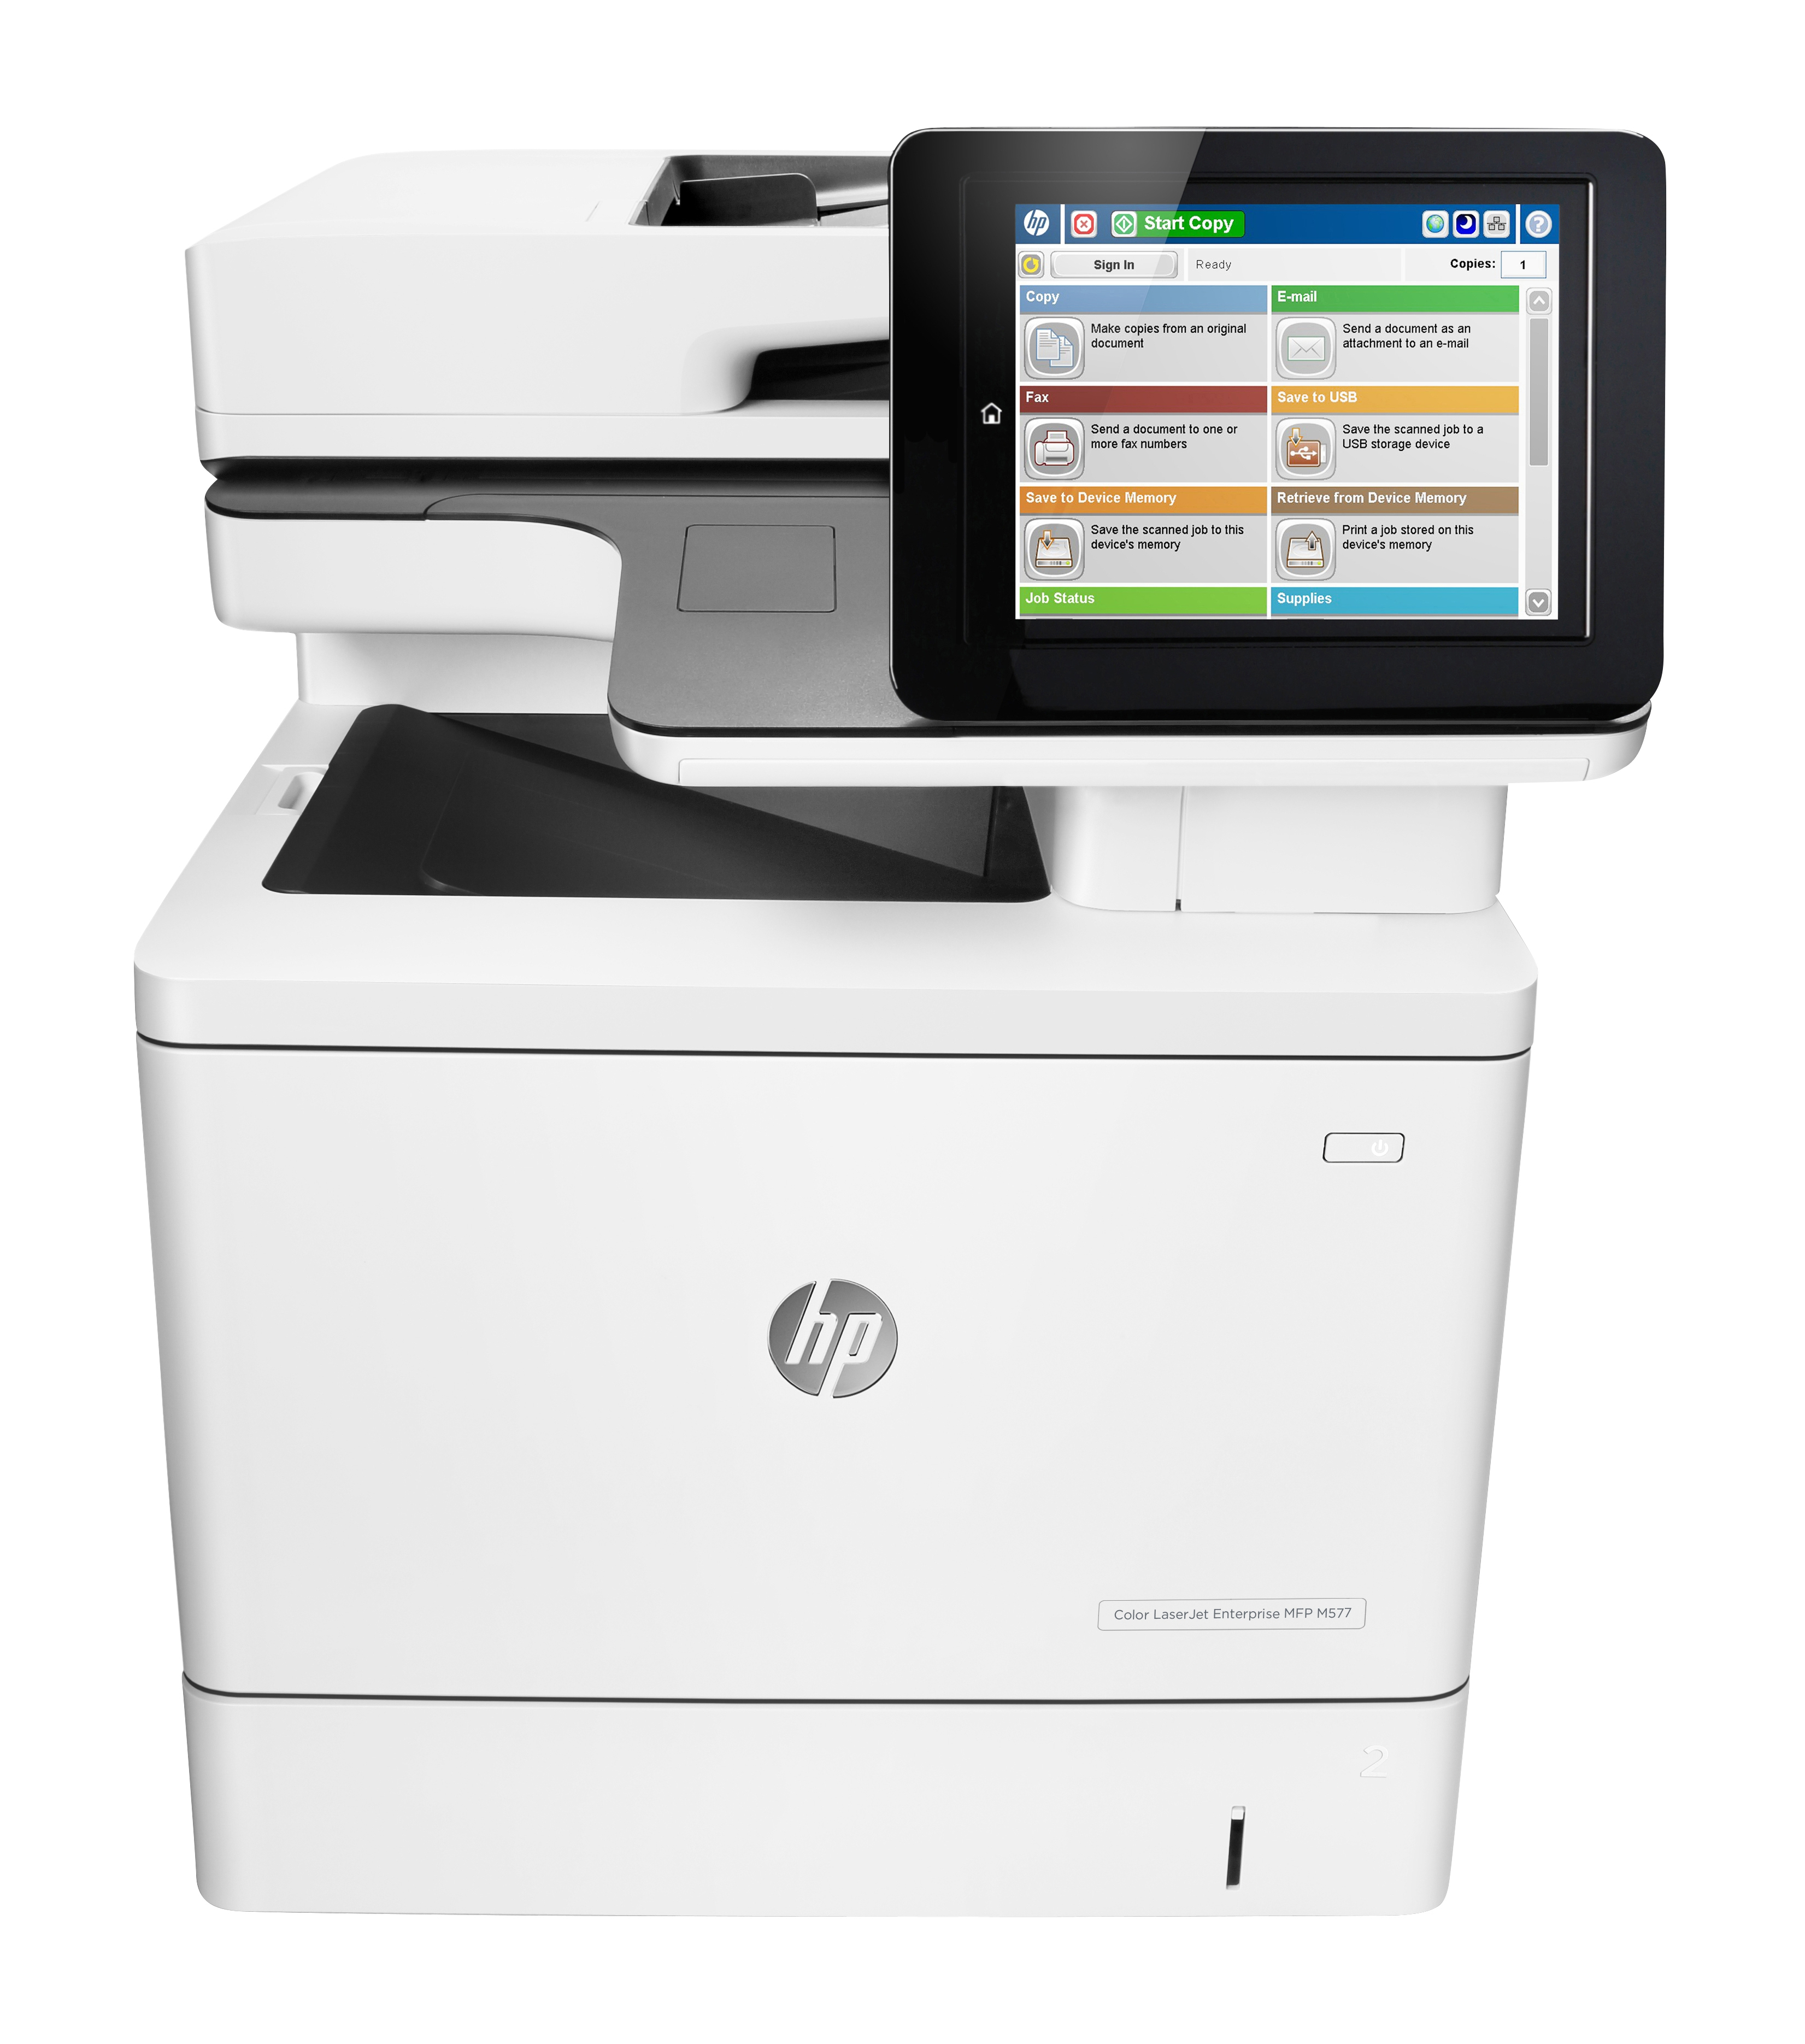 B5L46A HP Colour LaserJet Enterprise MFP M577dn M577 Multifunction A4 Printer - Refurbished with 3 months RTB warranty